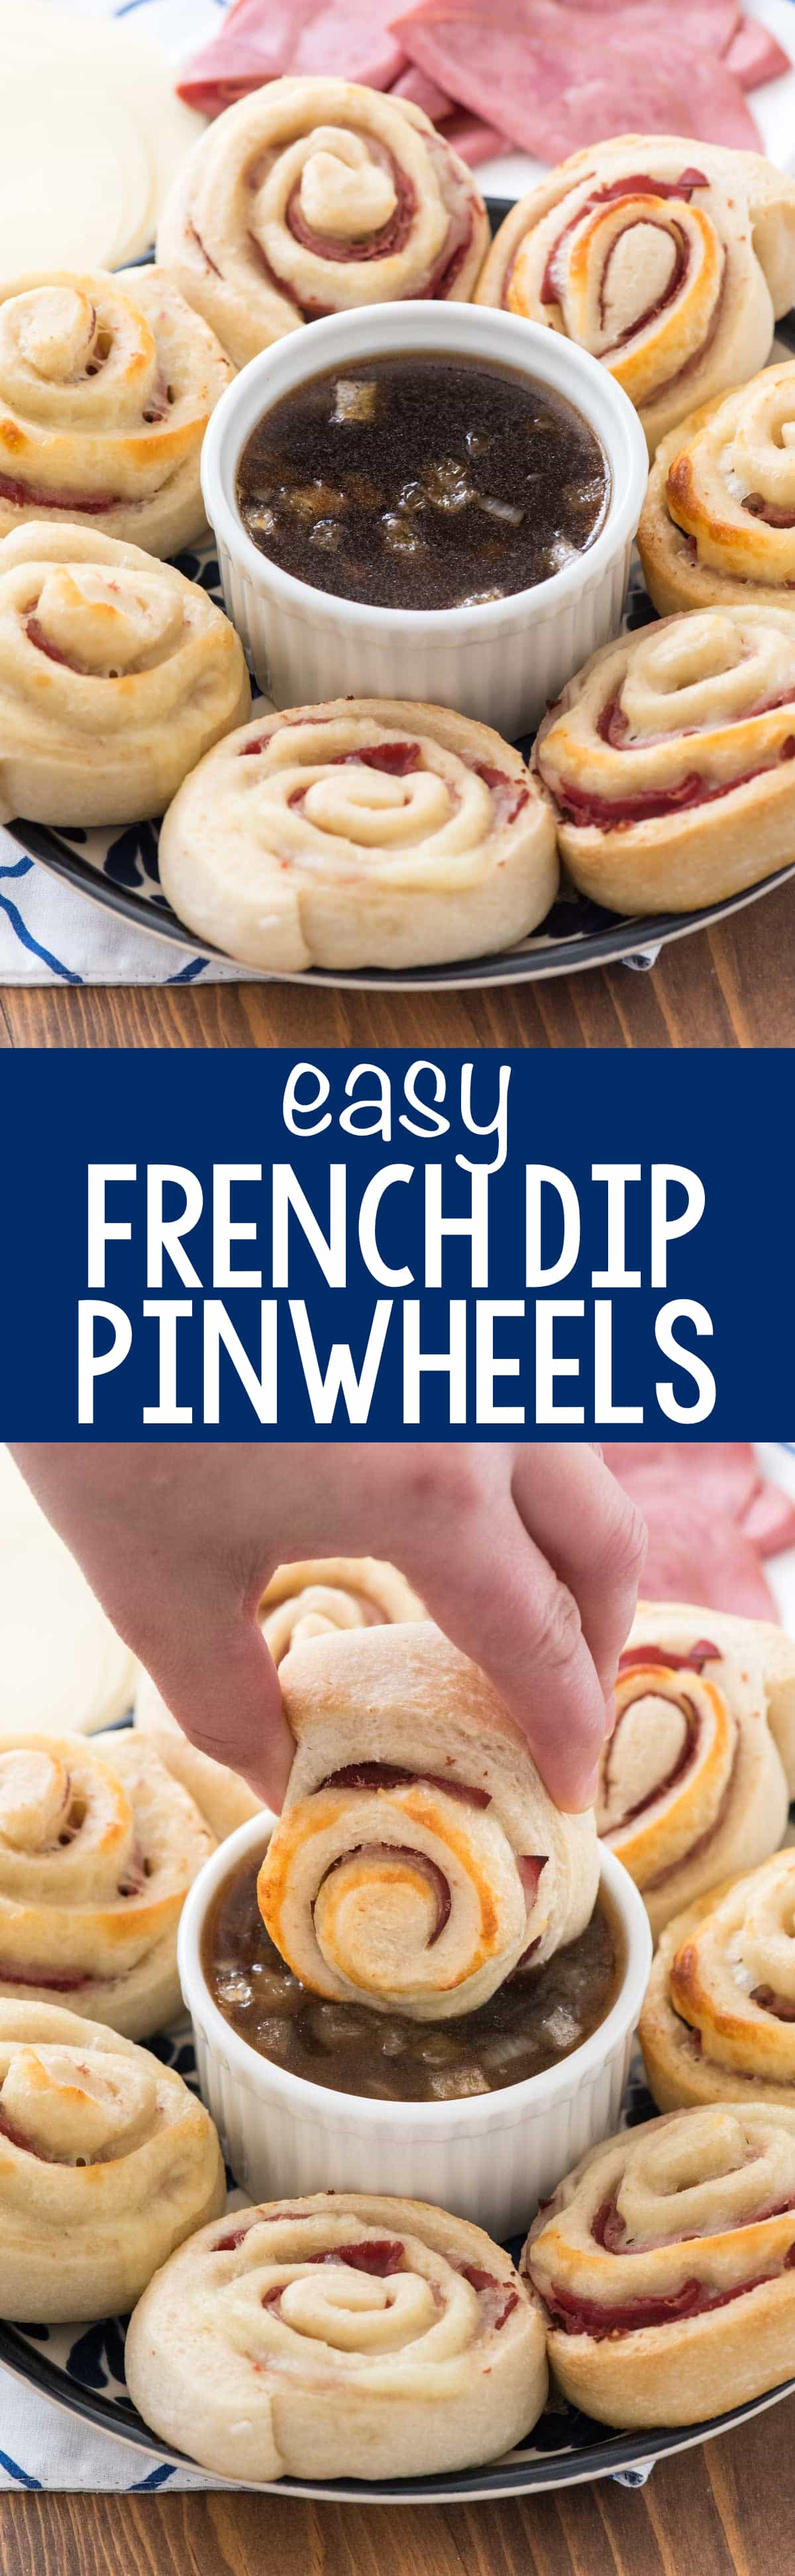 French Dip Pinwheels - this easy pinwheel recipe is perfect for an appetizer or dinner! Pizza dough is wrapped with roast beef and cheese and dipped in a french dip sauce!